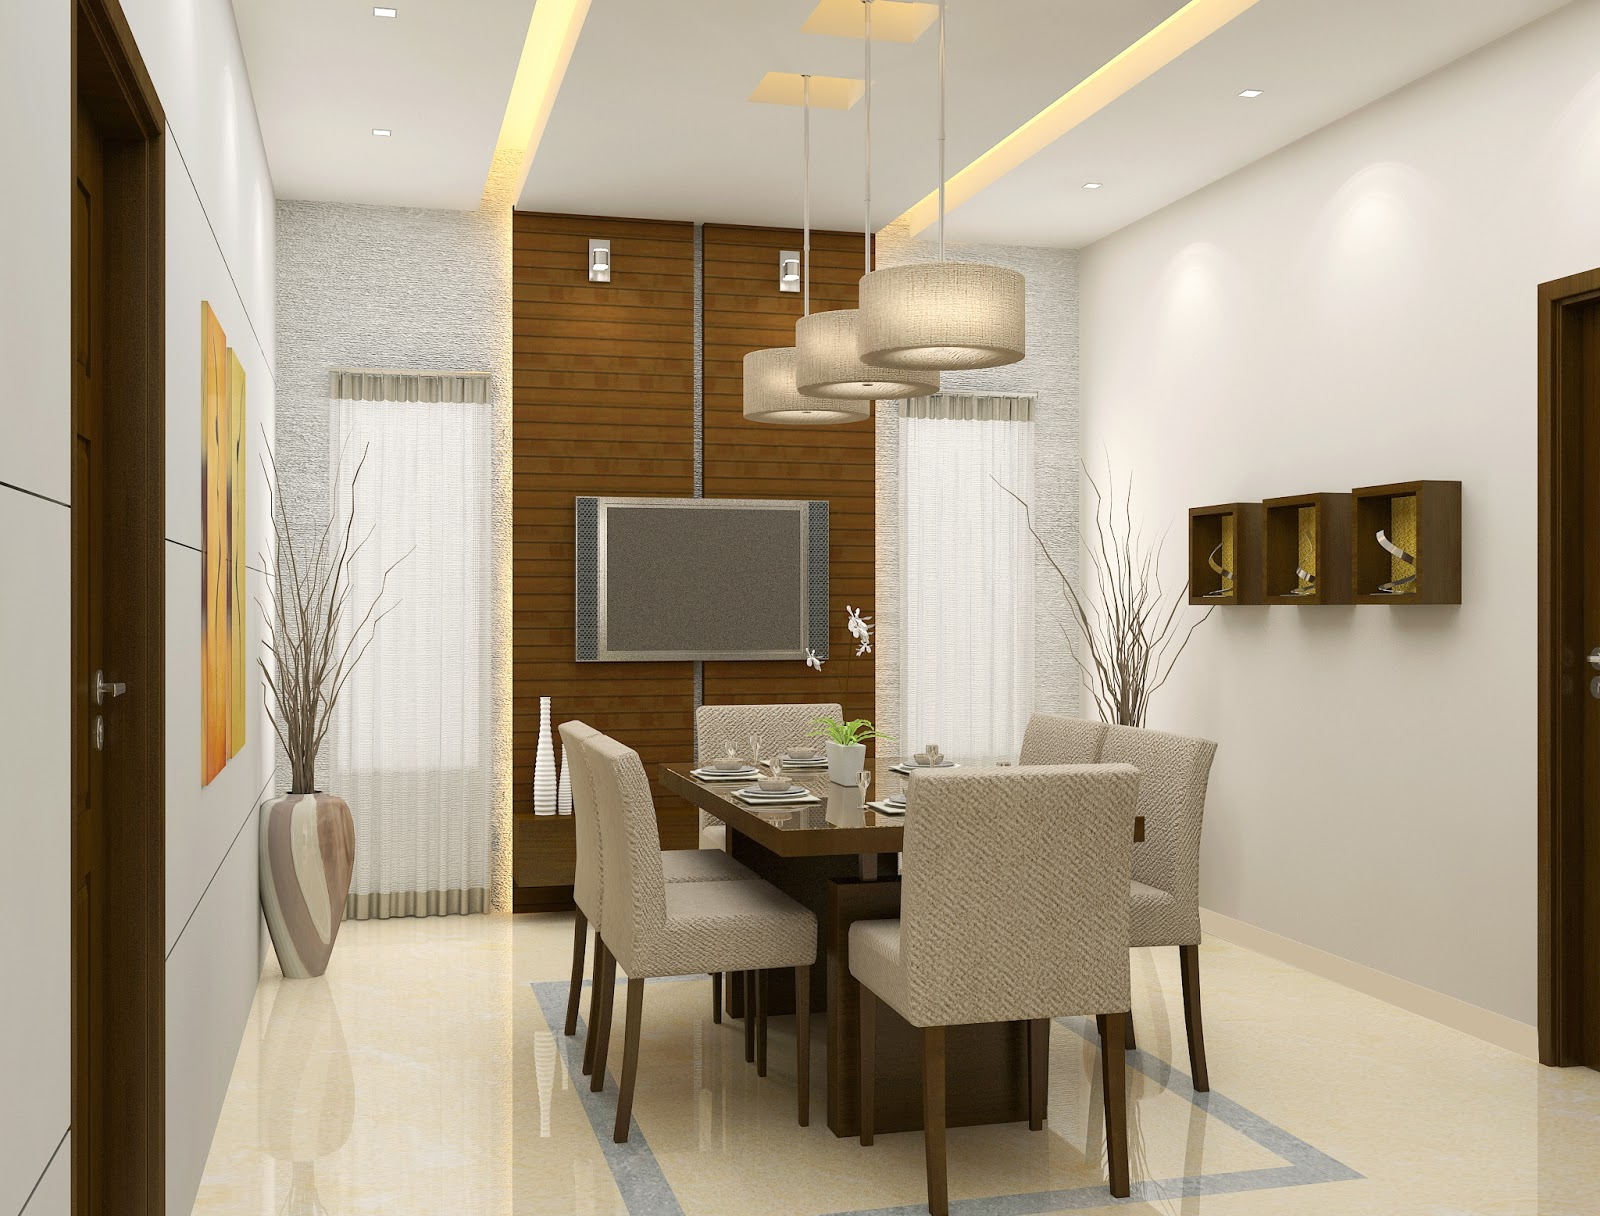 modern dining room design dining room interior dining room kerala title=